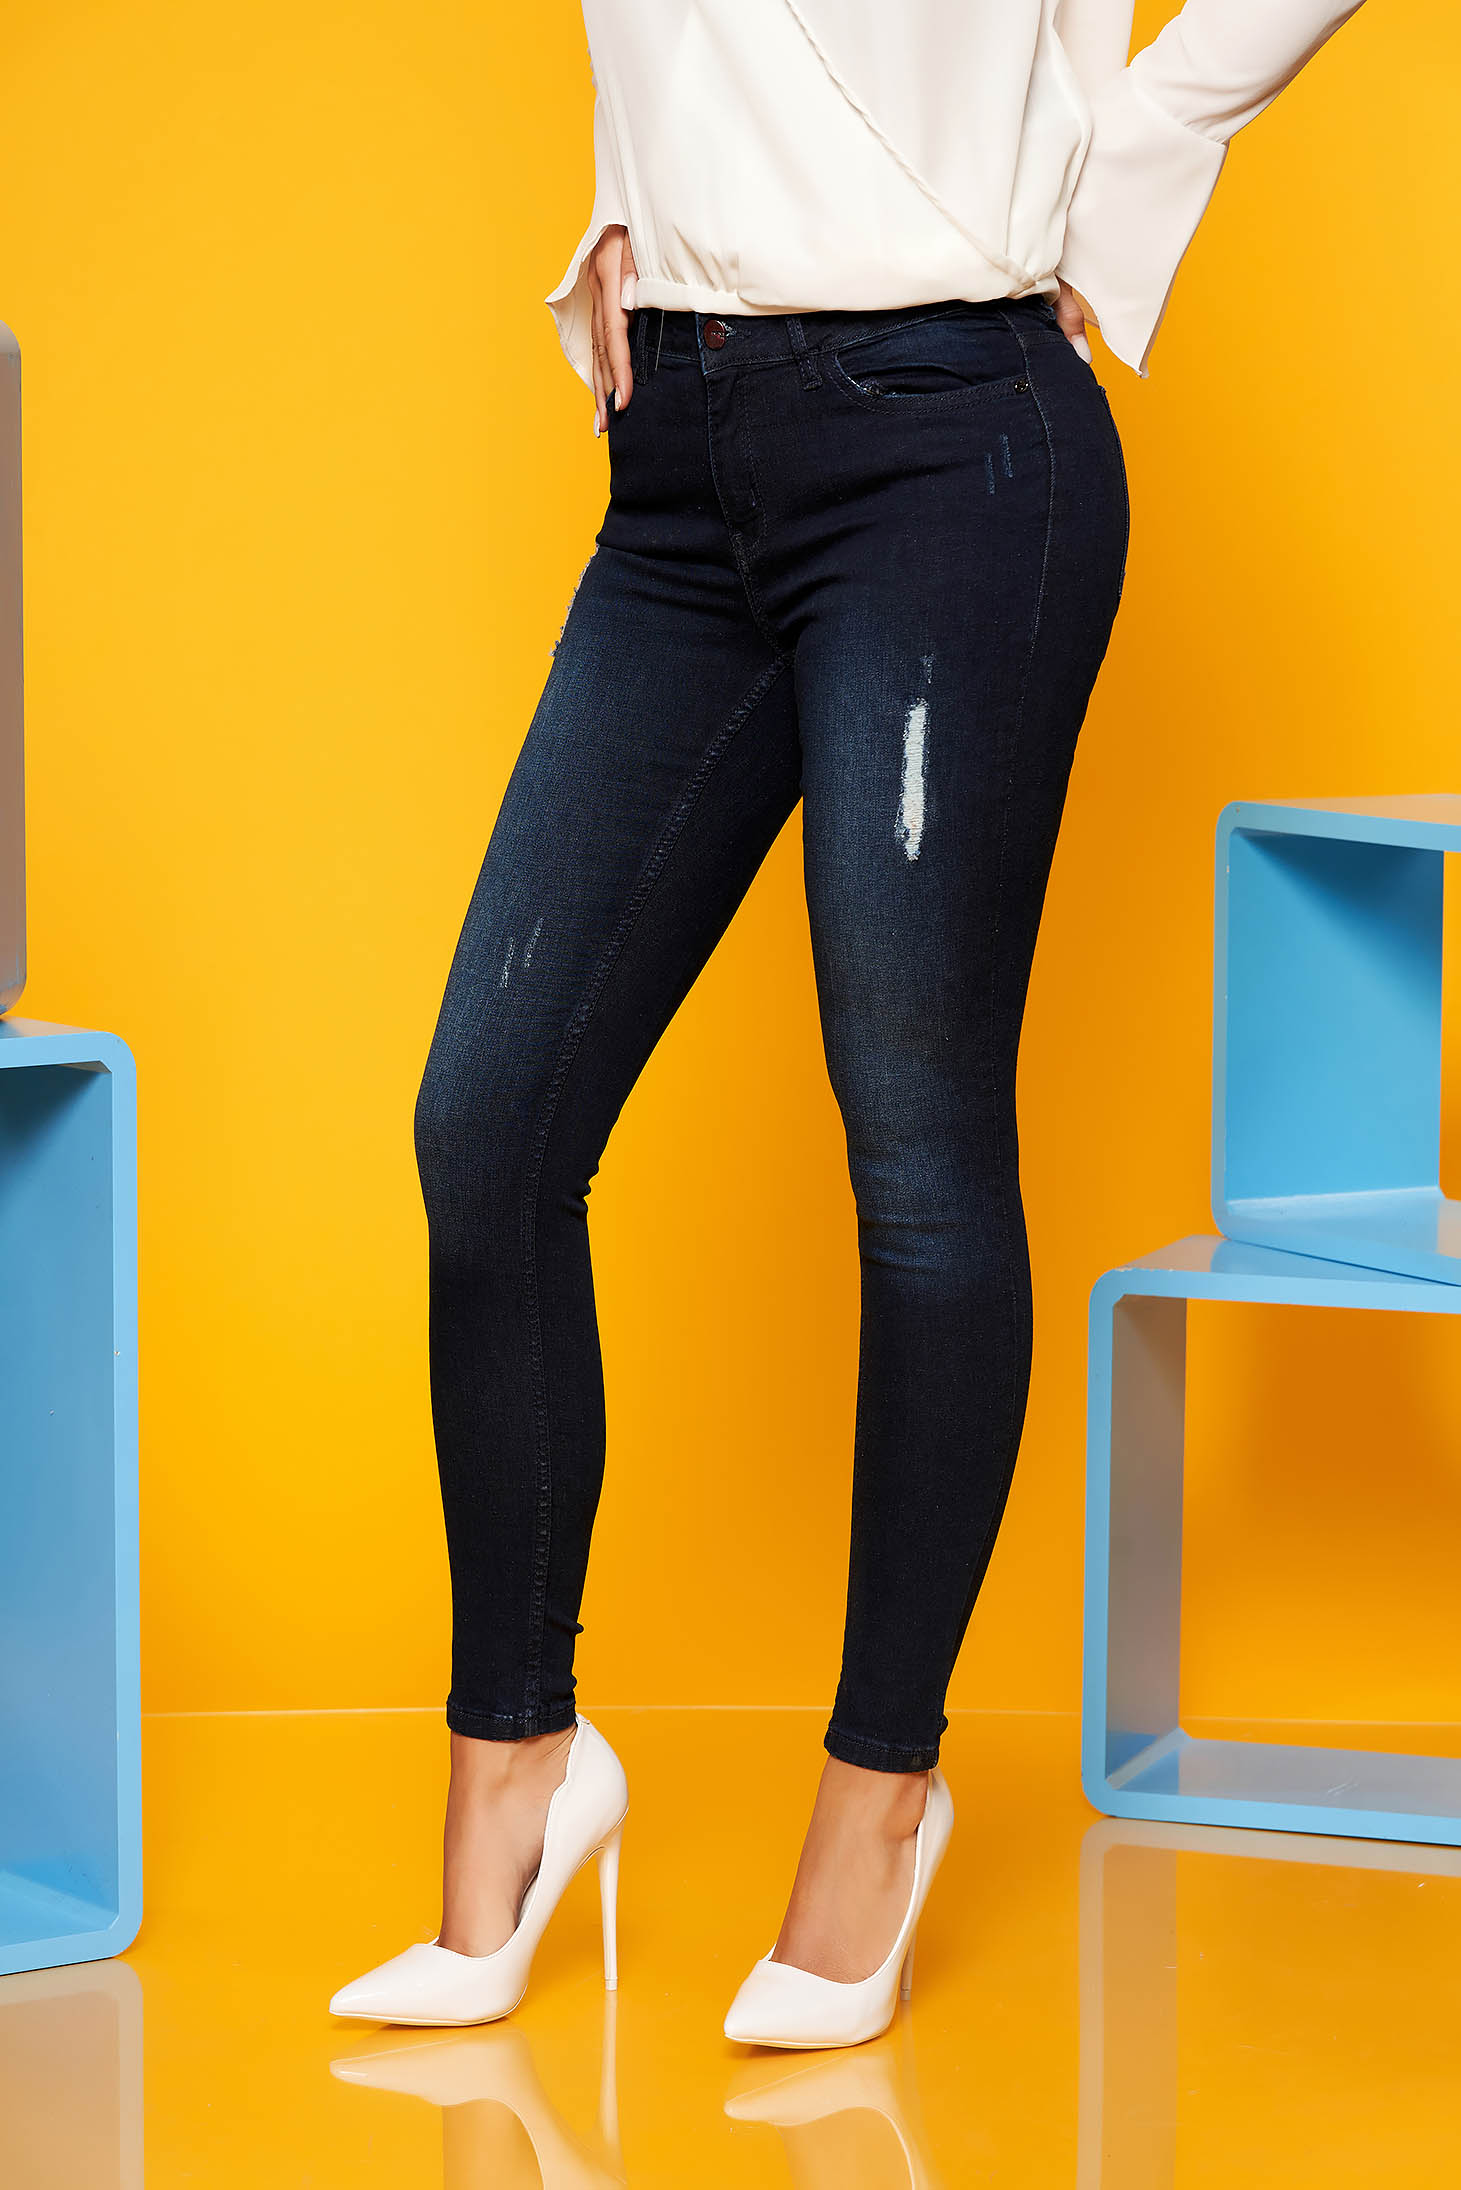 Top Secret darkblue casual trousers with medium waist elastic cotton